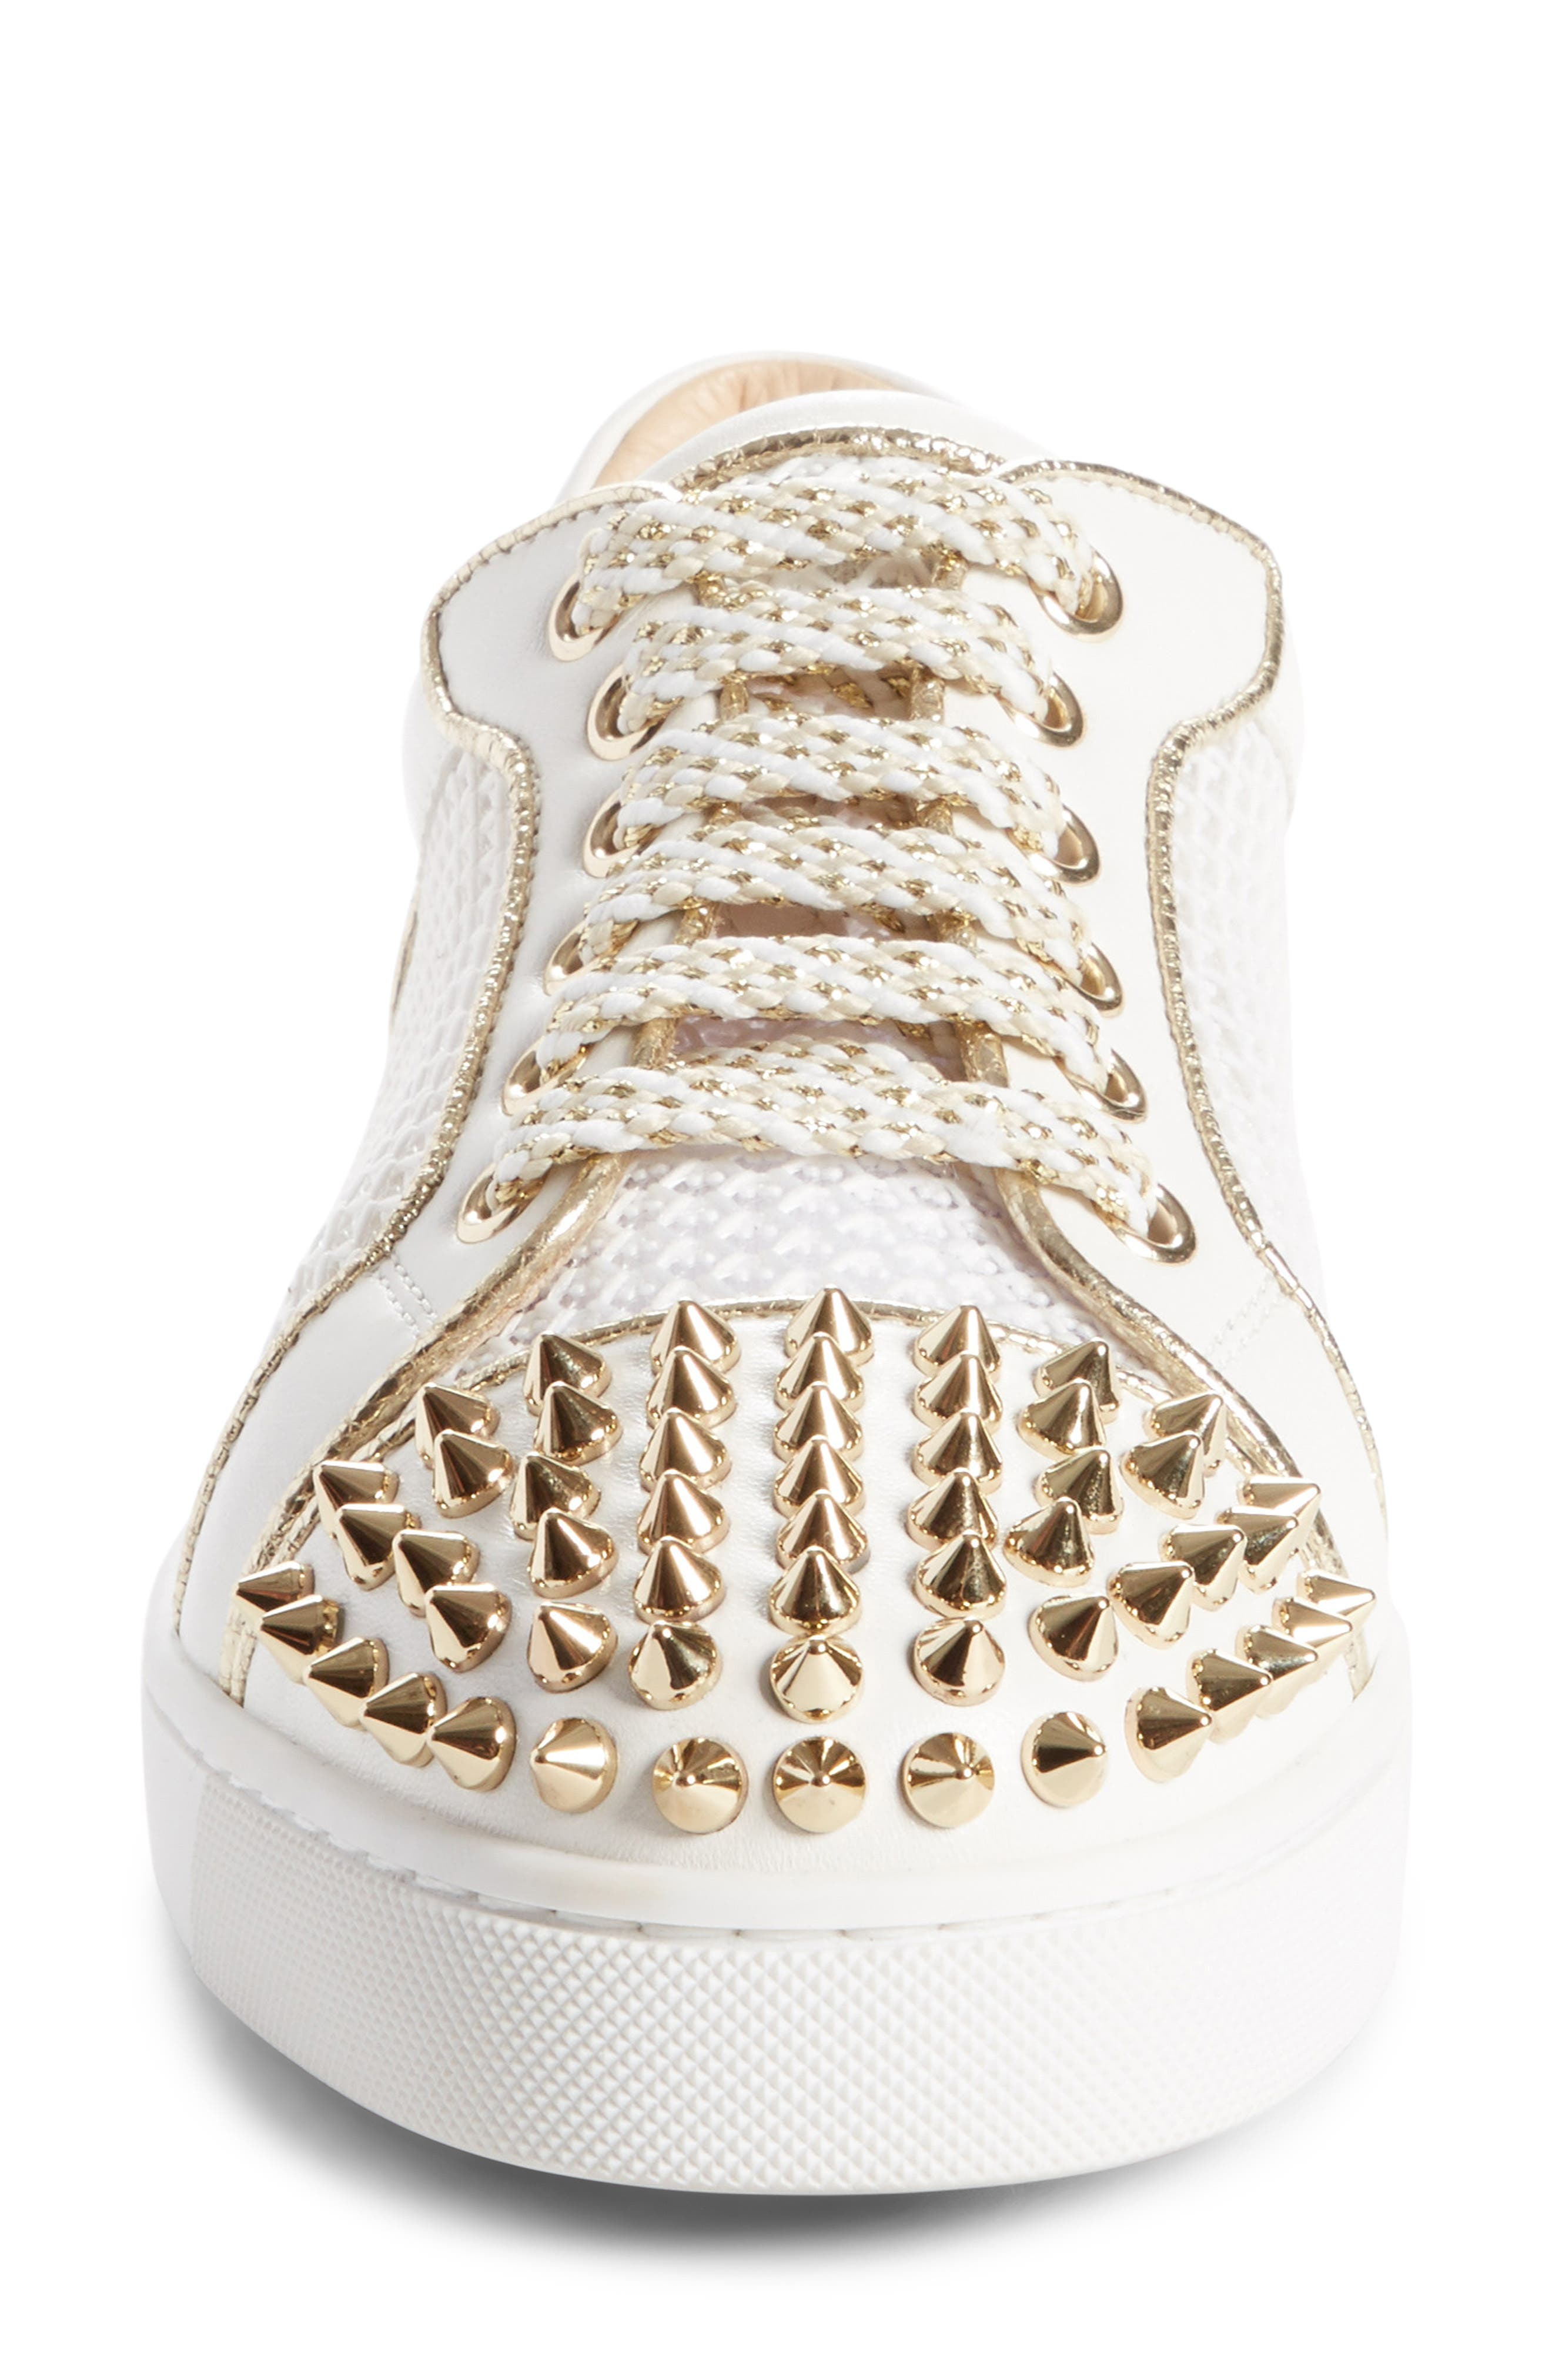 Vieira Spiked Low Top Sneaker,                             Alternate thumbnail 4, color,                             Latte/ Light Gold